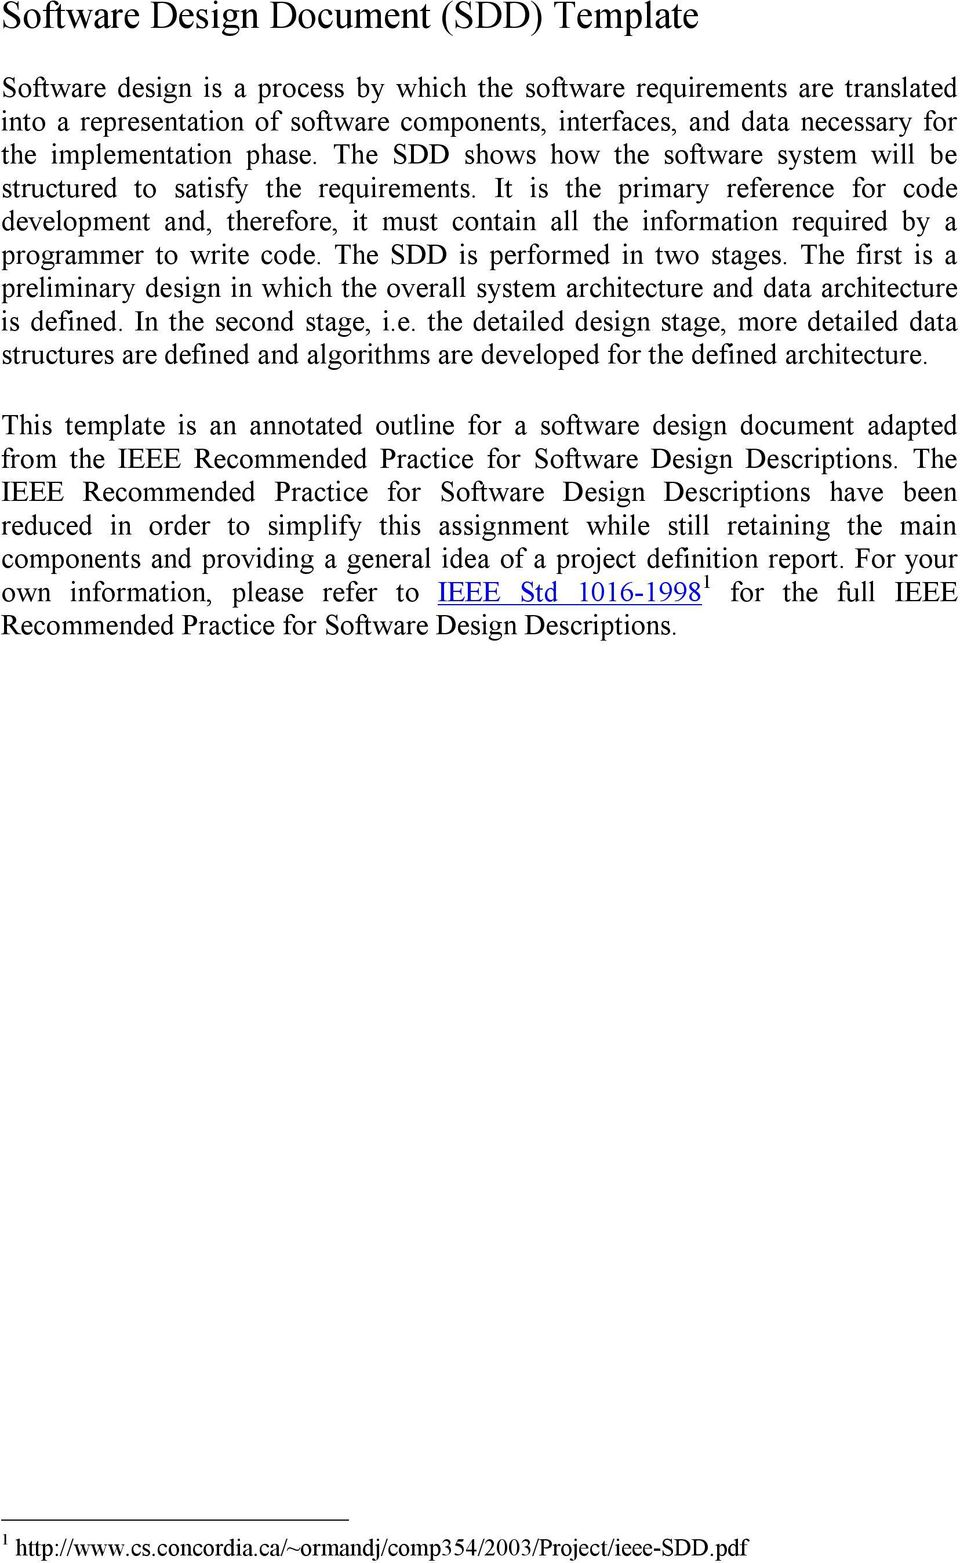 Software Design Document SDD Template PDF - Software design document template ieee